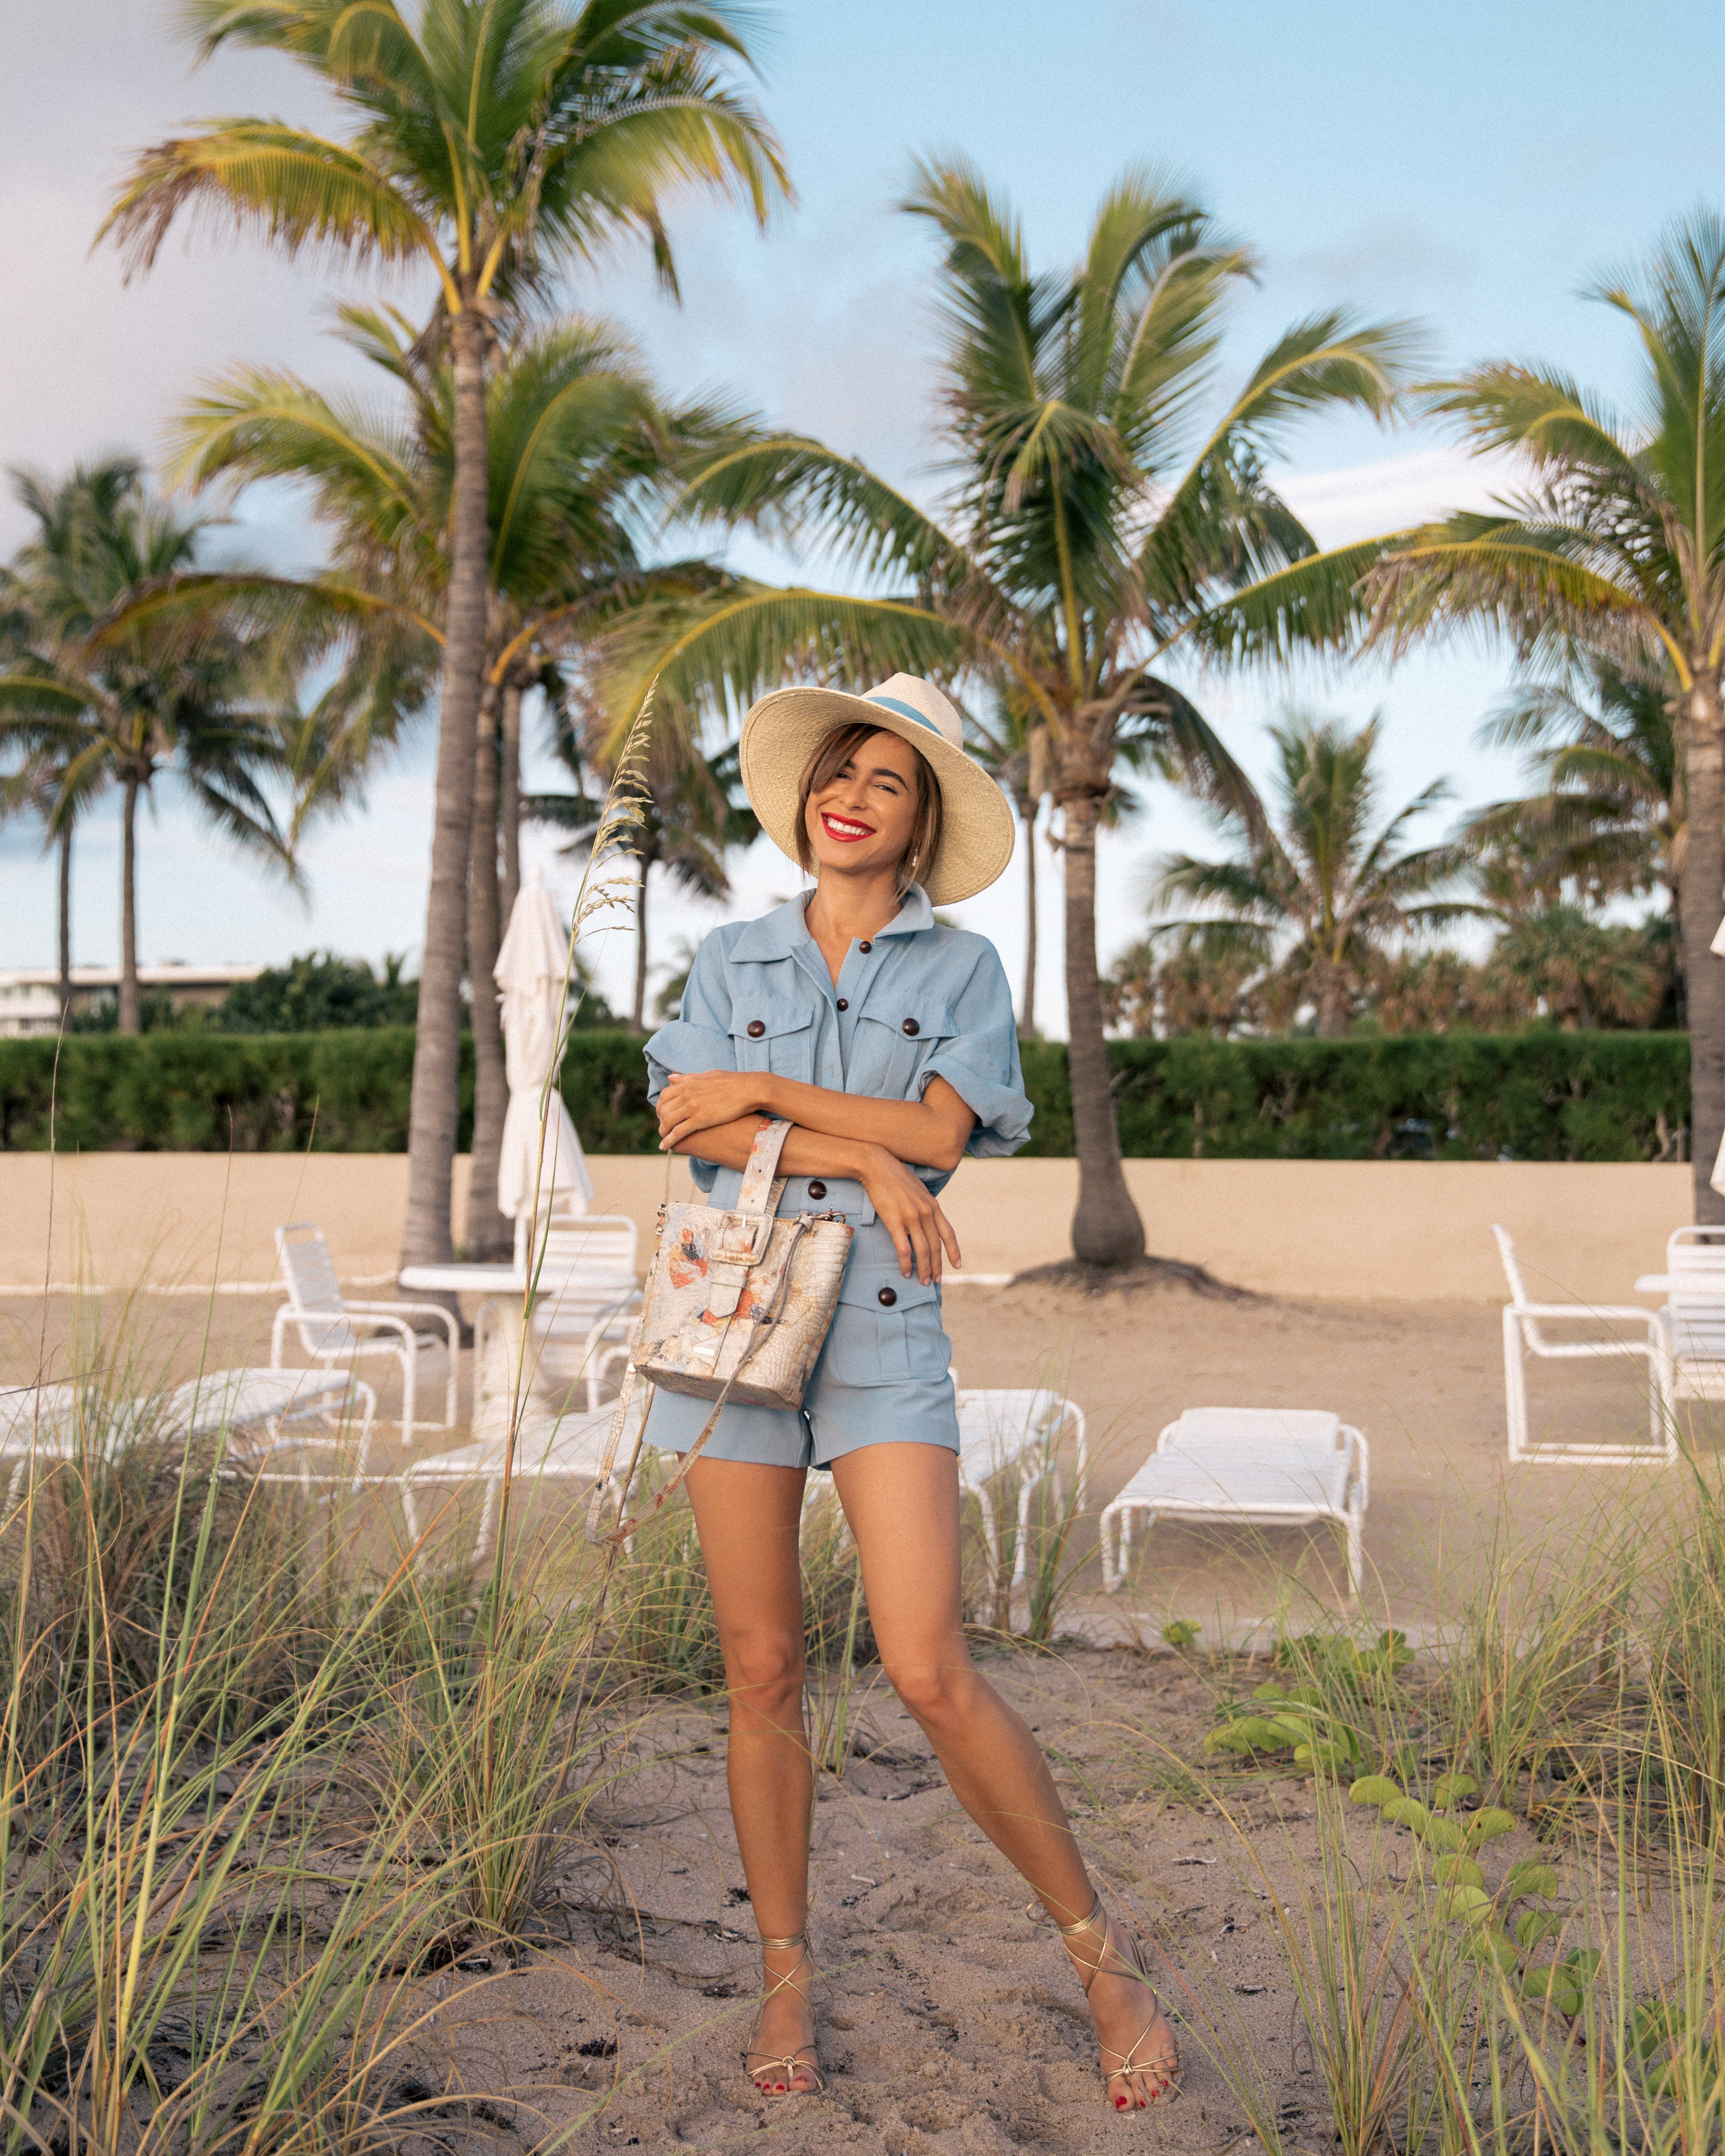 Blogger Stephanie Hill on The Style Bungalow shares From Hot to Hotter Brahmin